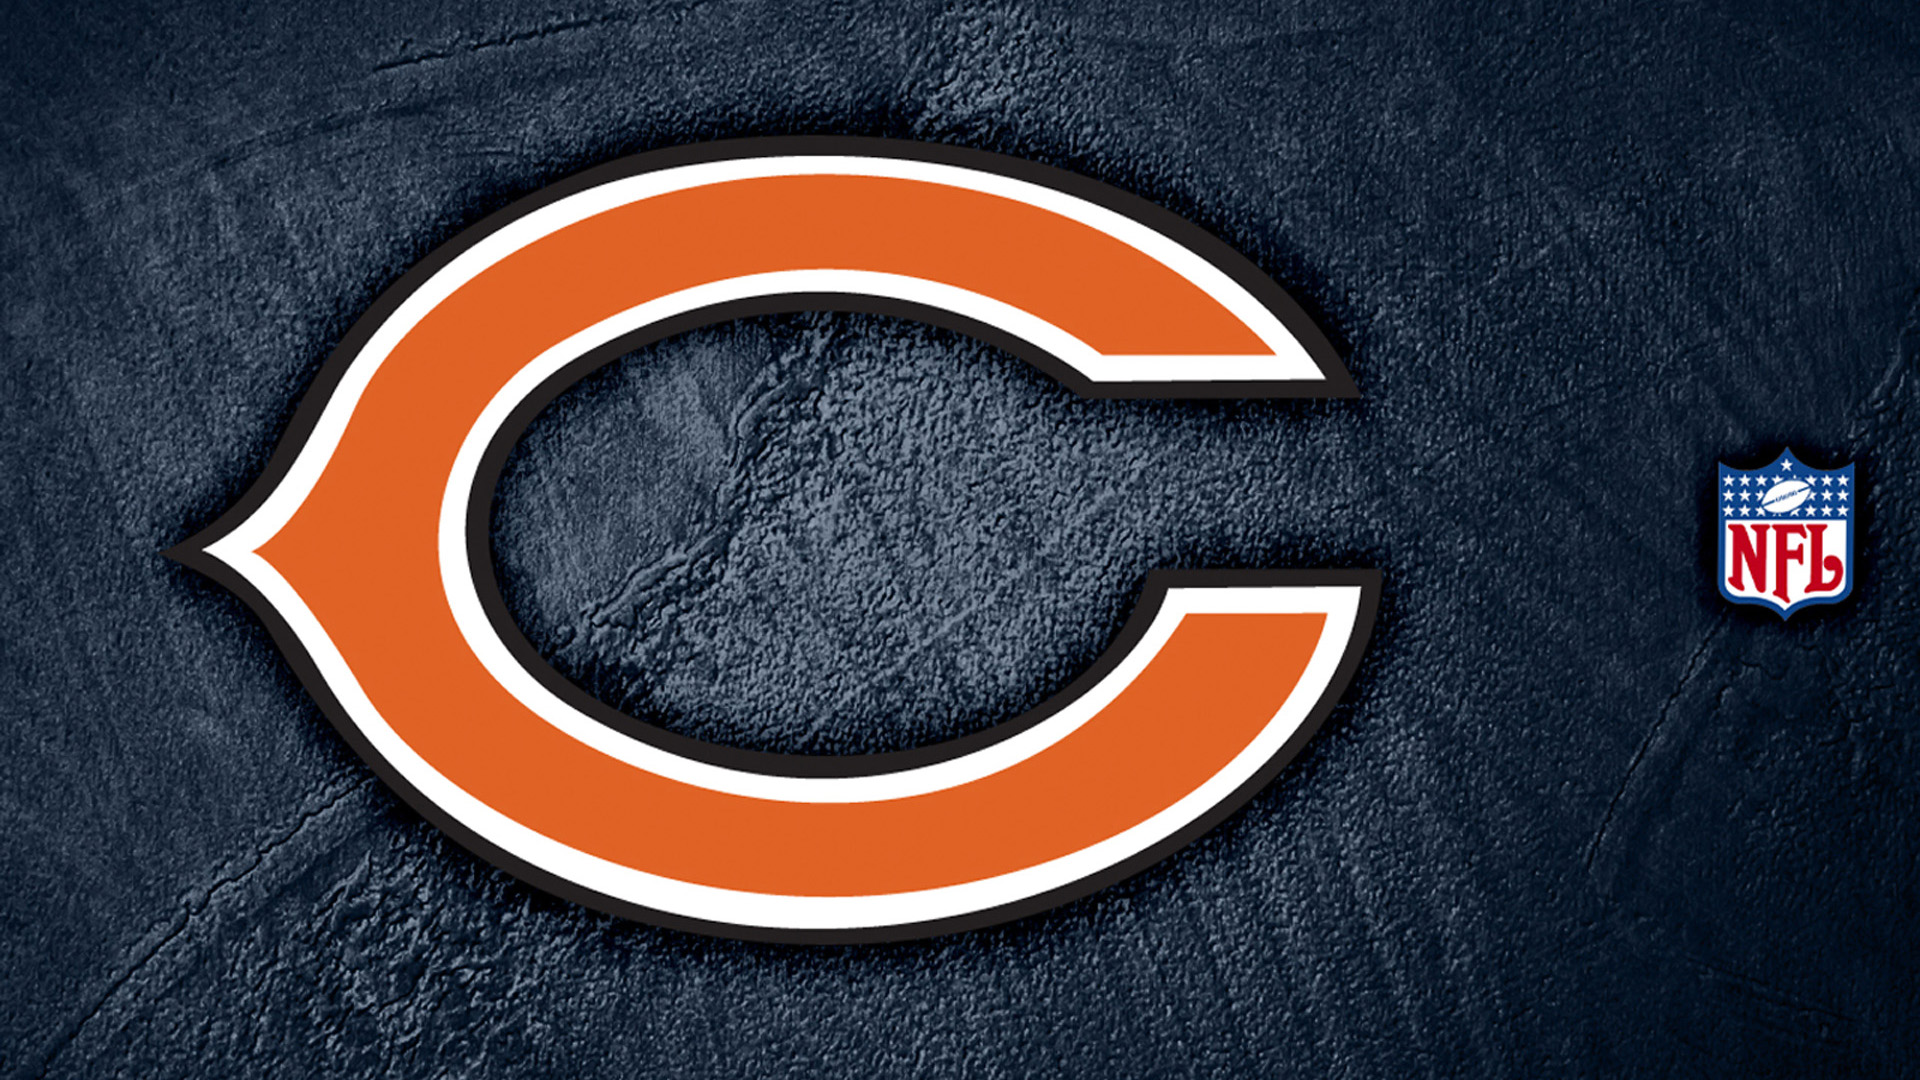 HD Chicago Bears Wallpaper 1920x1080